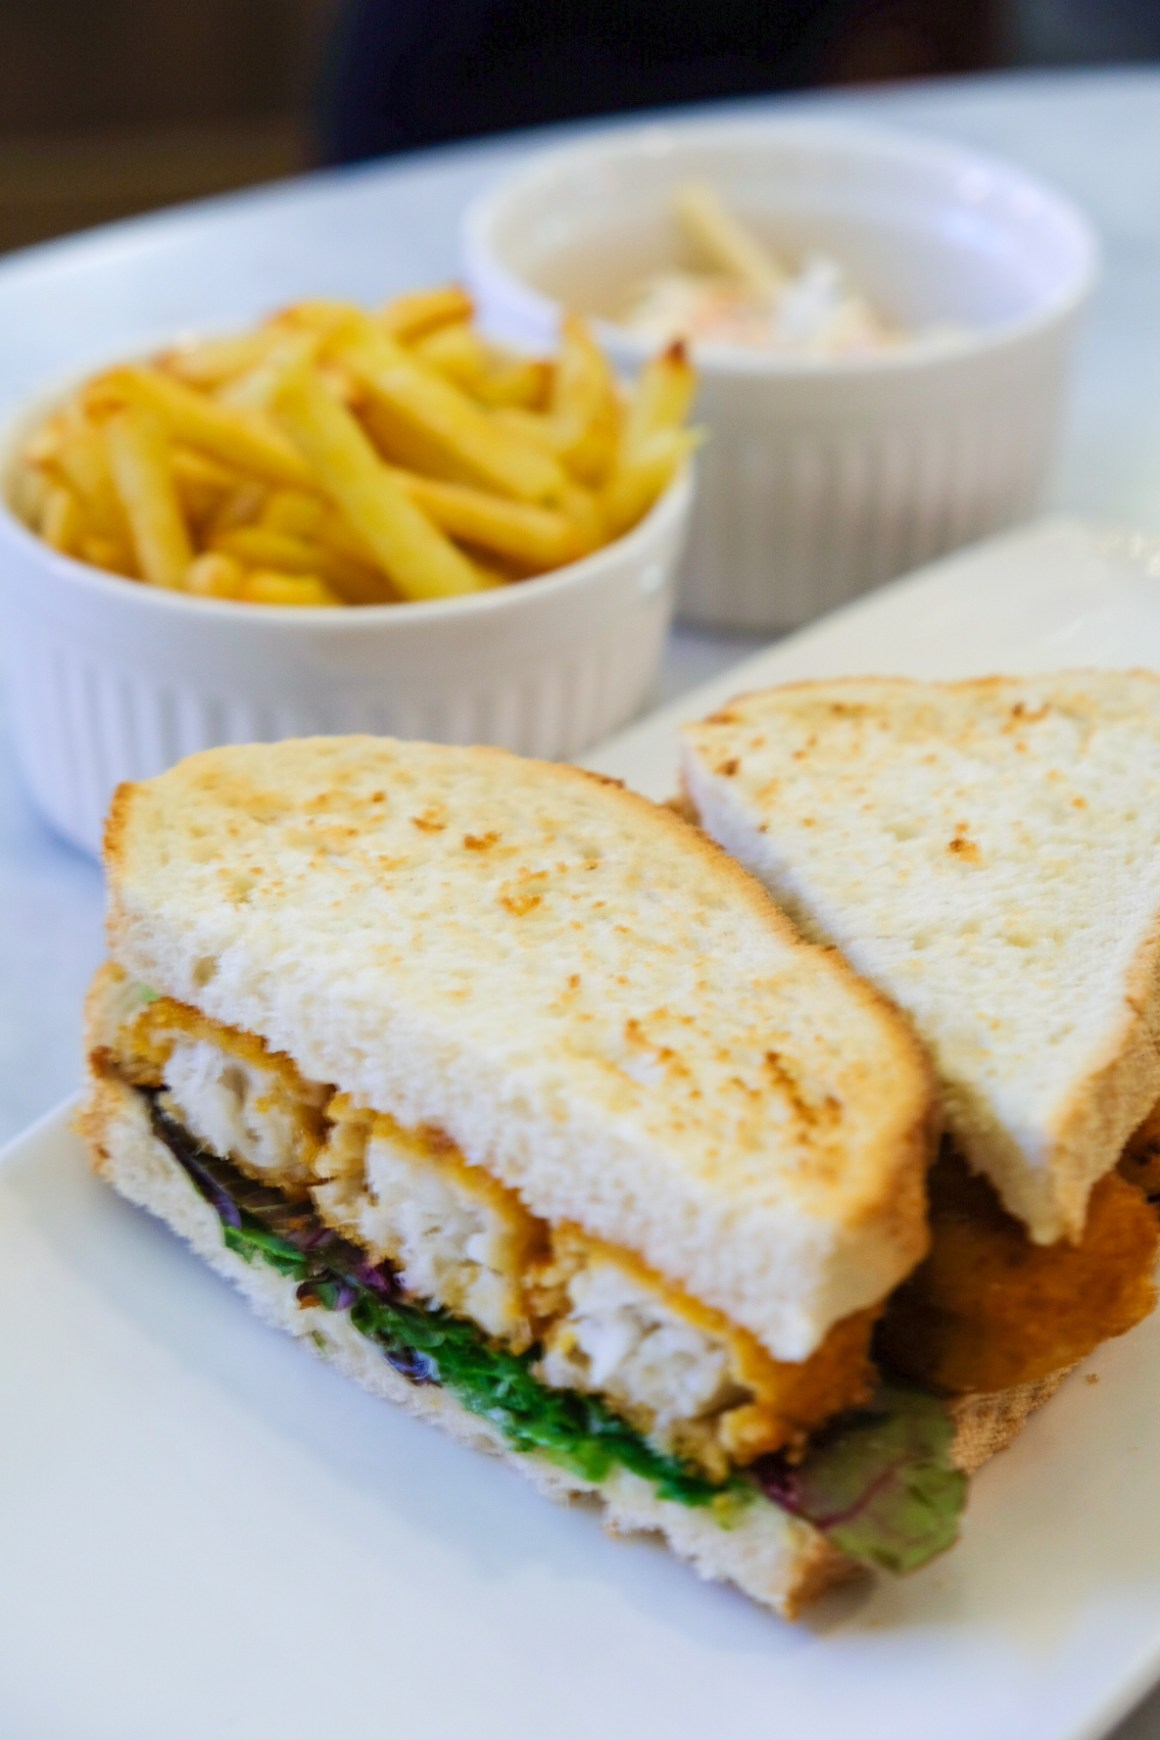 M&S Cafe New Menu Items - Fish Finger Sandwich with French Fries ($16)